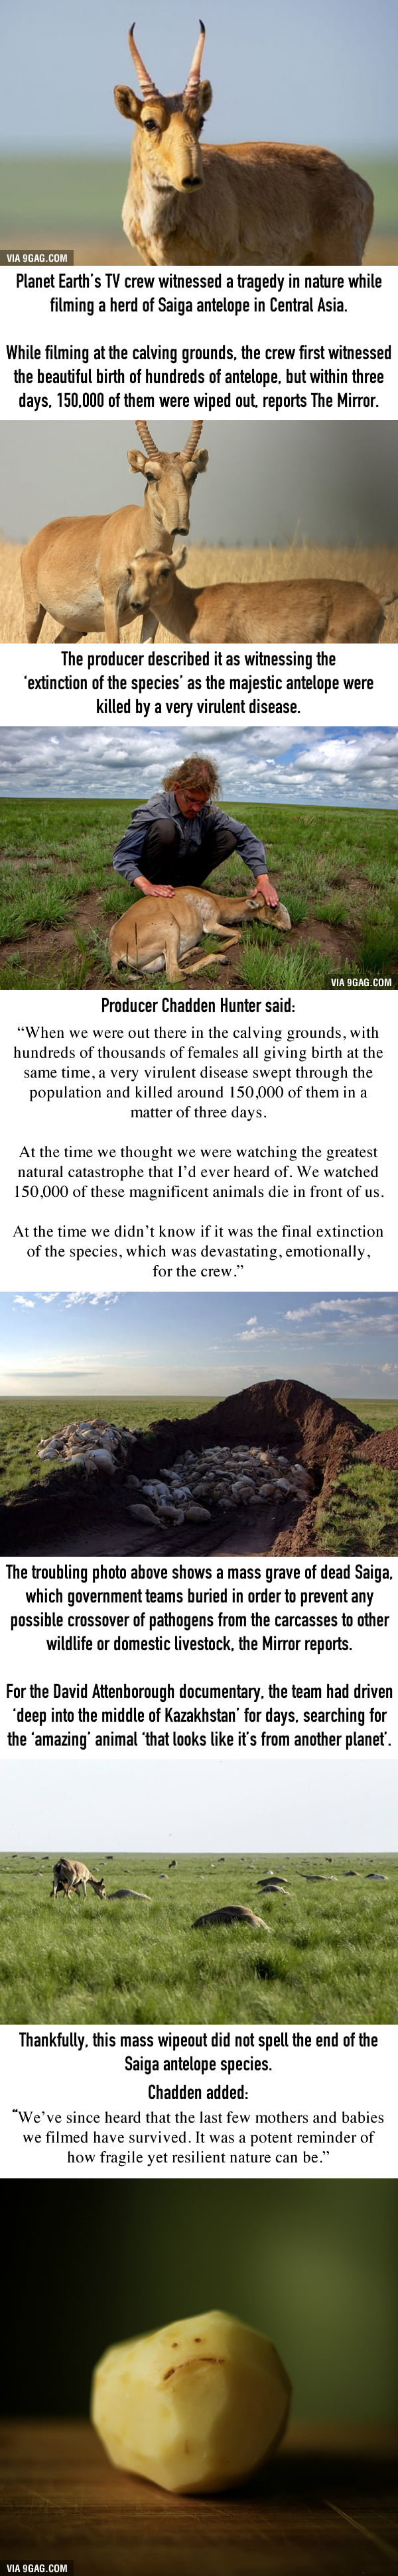 Planet Earth II Crew Horrified To See 150,000 Antelopes Die In Front Of Them